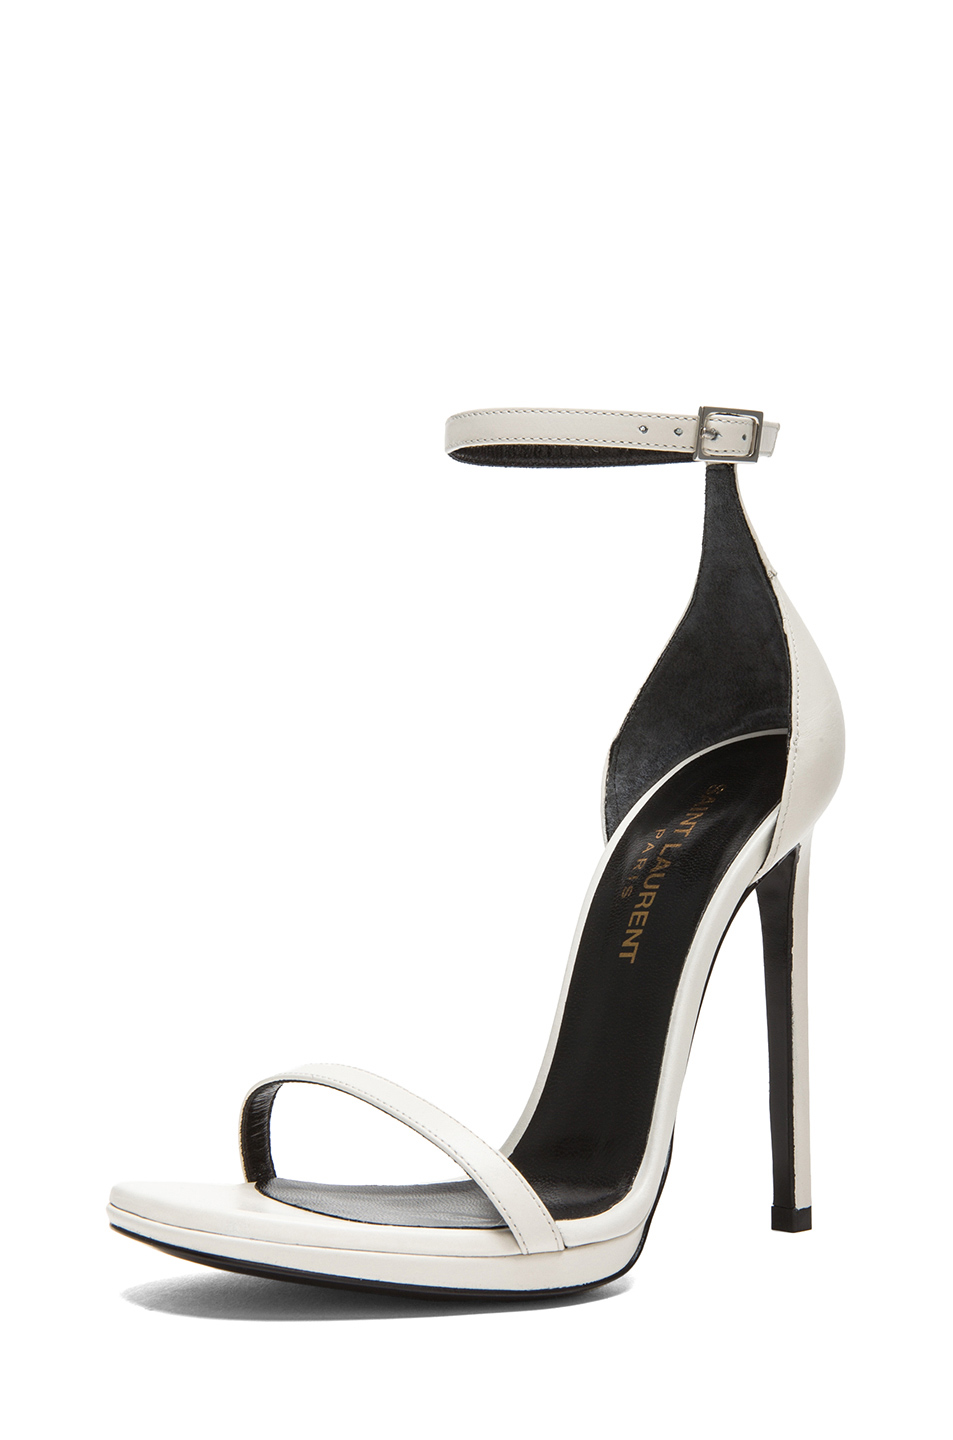 Saint Laurent Jane Leather Ankle Strap Sandals in White